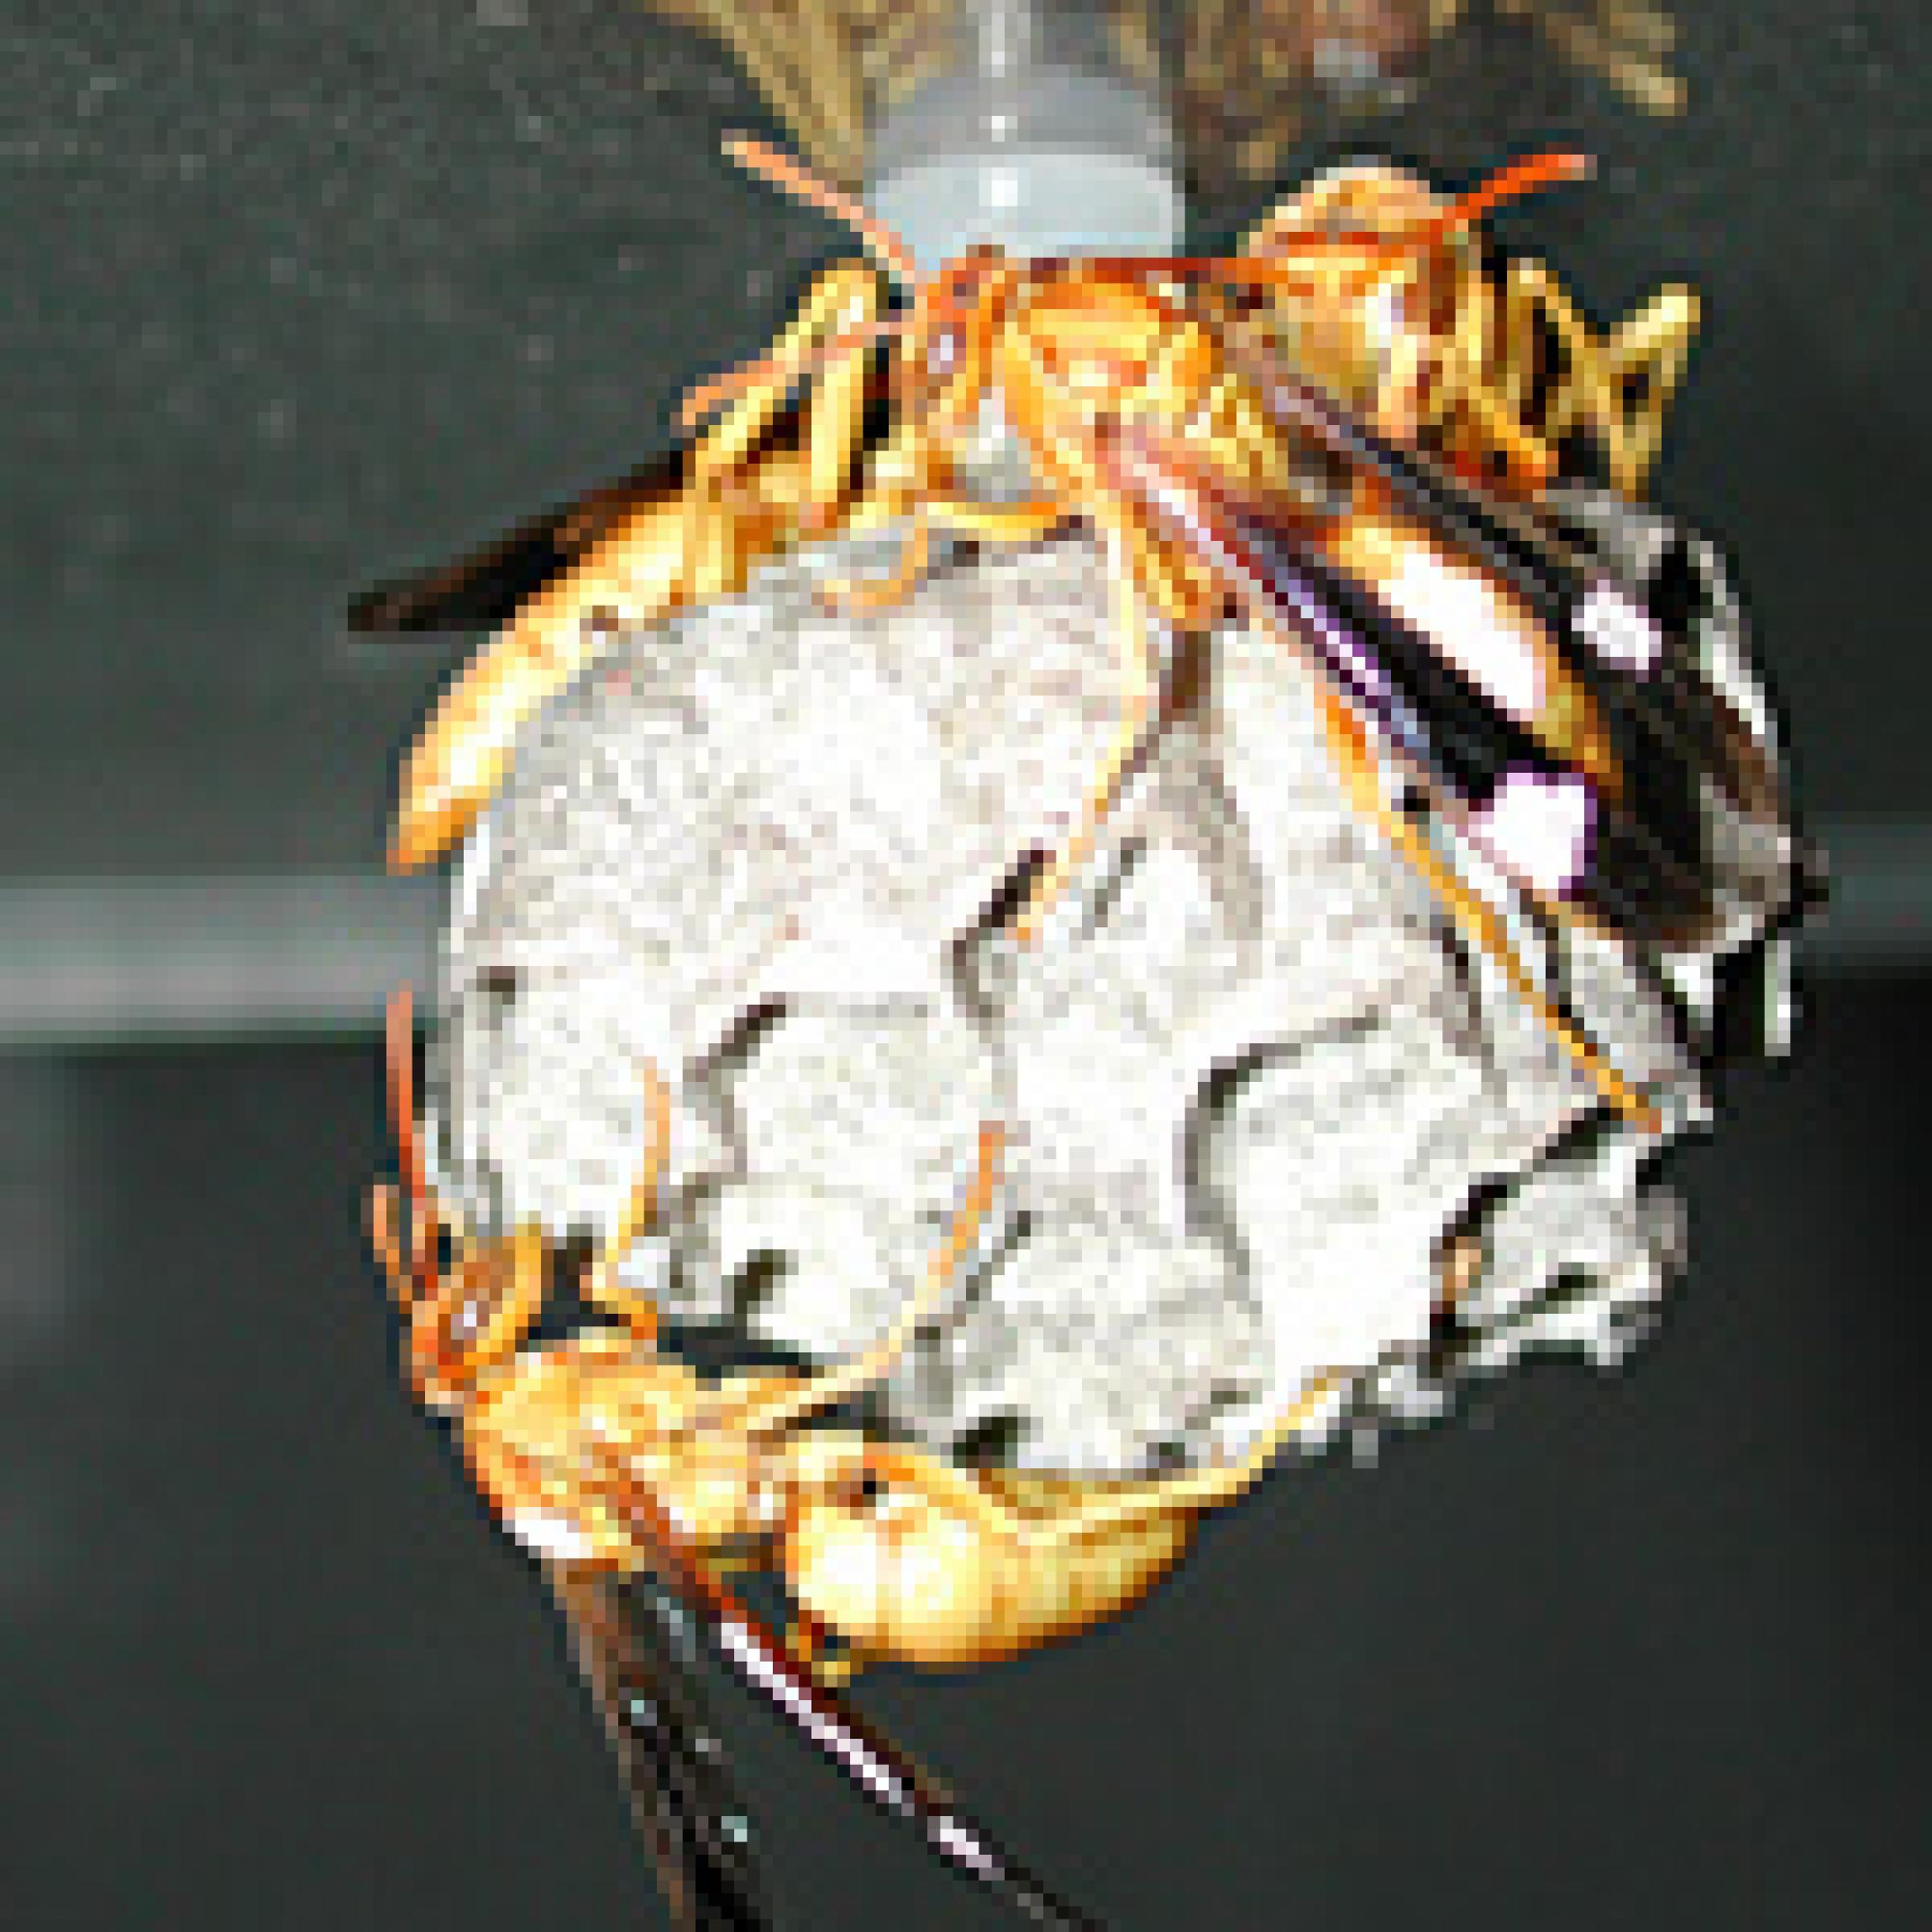 If paper wasps actually sleep, do they post extra sentries to guard the nest through the night?